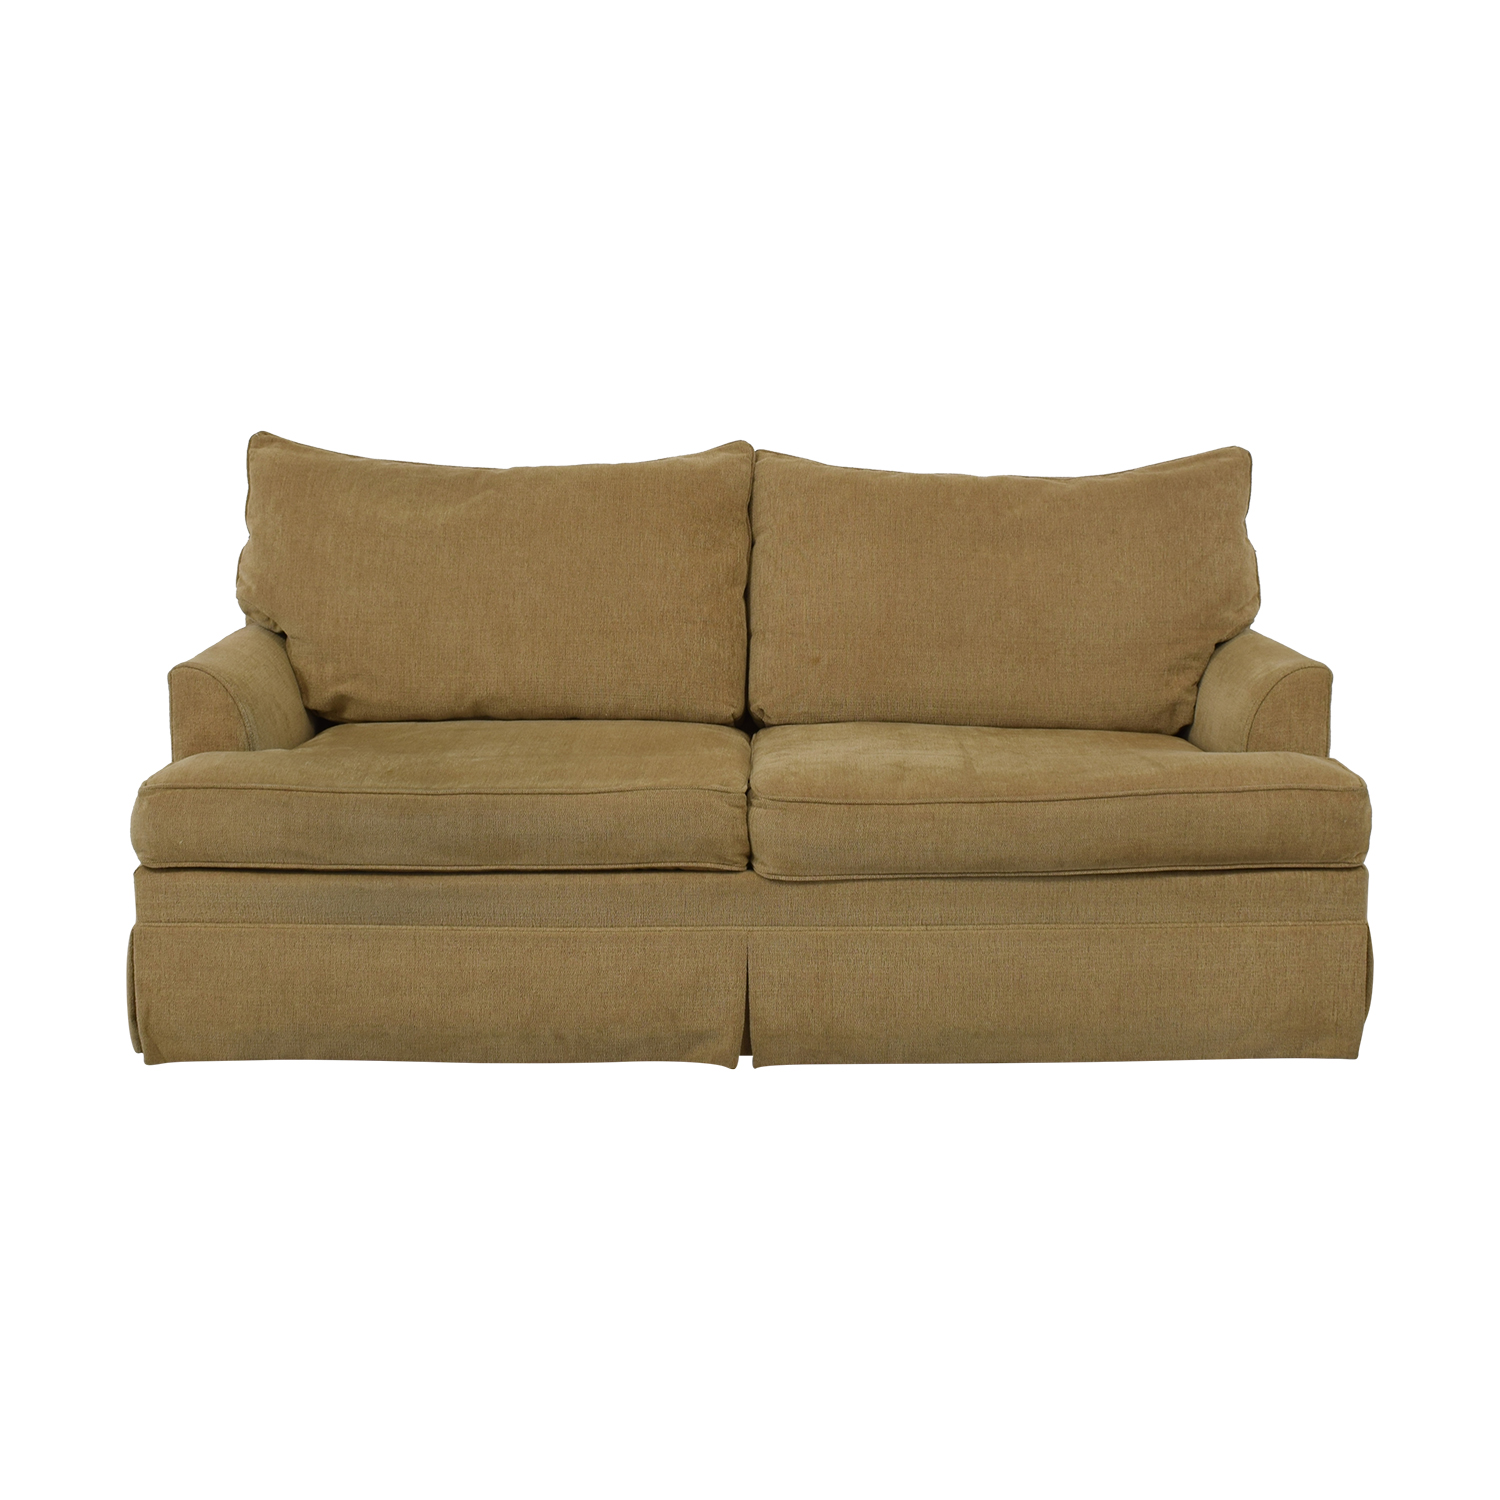 buy Ethan Allen Two Cushion Sofa Ethan Allen